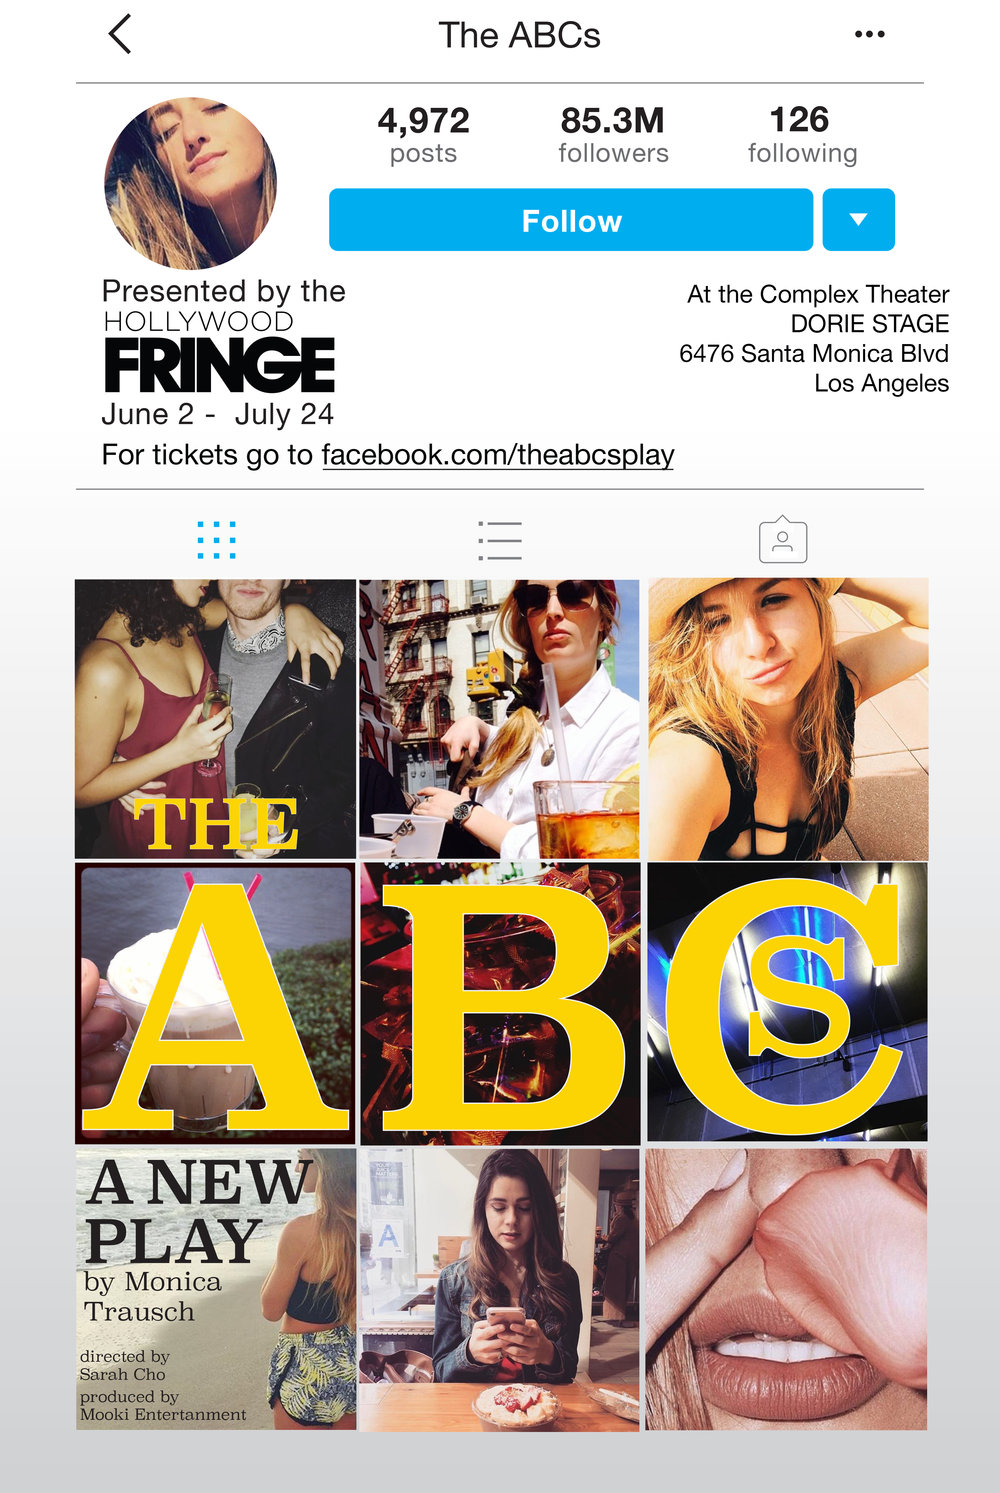 THE ABC's (Play) - When she moves to a new school, Dakota wants to fit in with the ABCs, a group who make The Plastics from Mean Girls look like kindergarteners. The ABCs live for all things Kardashian, the latest lip gloss, and their many social media followers. They are perfect in every way. Duh! Dakota, along with her imaginary friend Margot, do everything in their power to make Dokato into the perfect 10 so she can fit in. But Margot goes rouge and forces Dakota to rob a house so she can pay for a boob job. Dakota must decide if she is going to give into Margot and the ABCs or go her own way. THE ABCS Premiers at the 2017 LA Fringe Festival with a sold out run. It is currently being developed into a full length feature film.